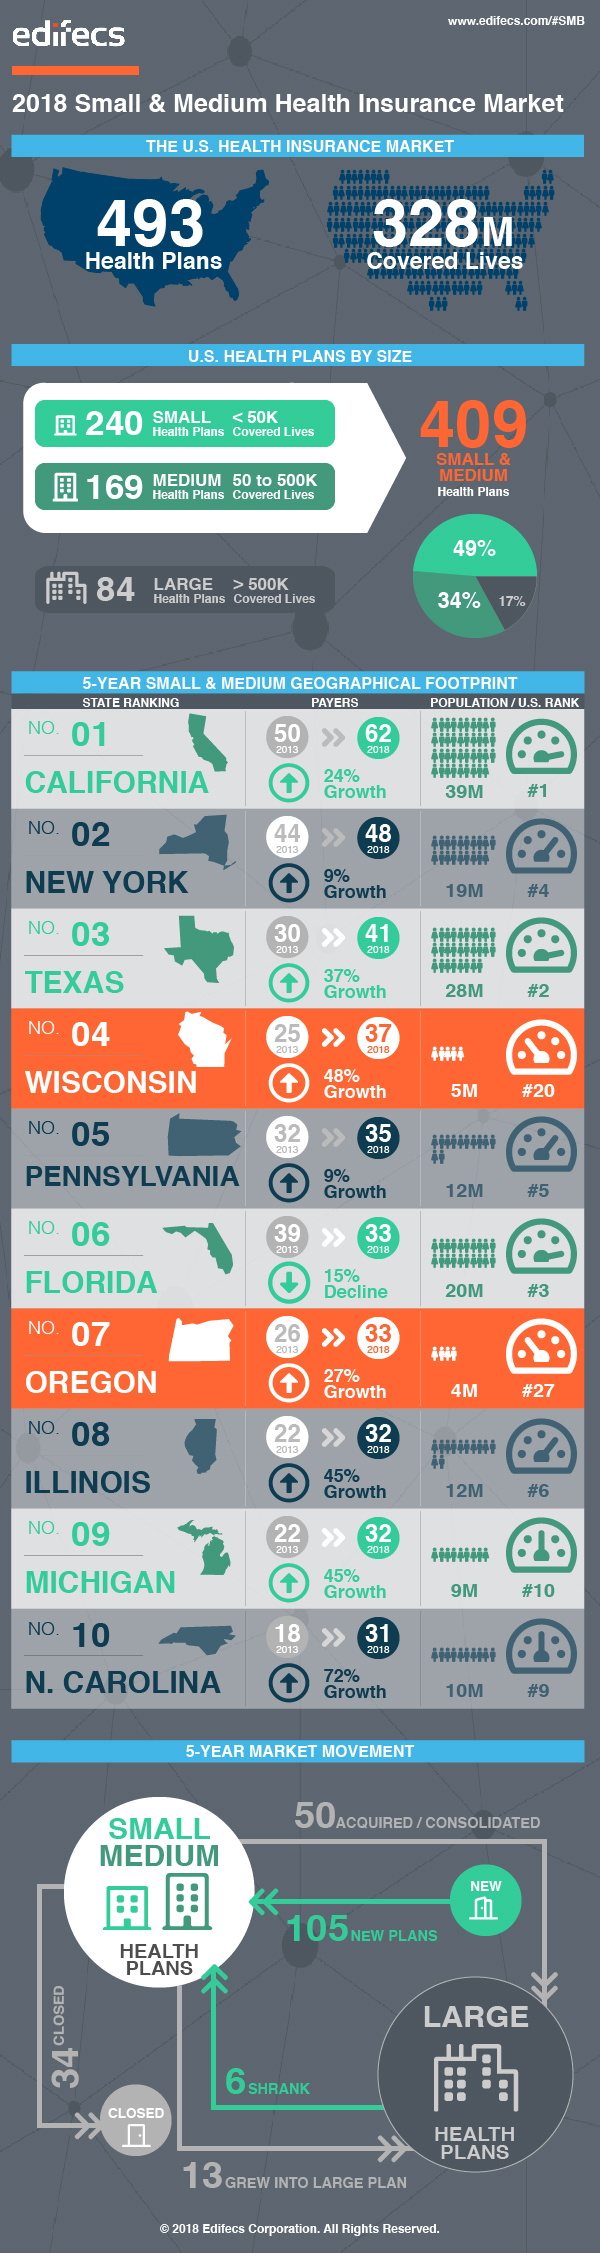 Top 10 States in the SMB Health Insurance Market